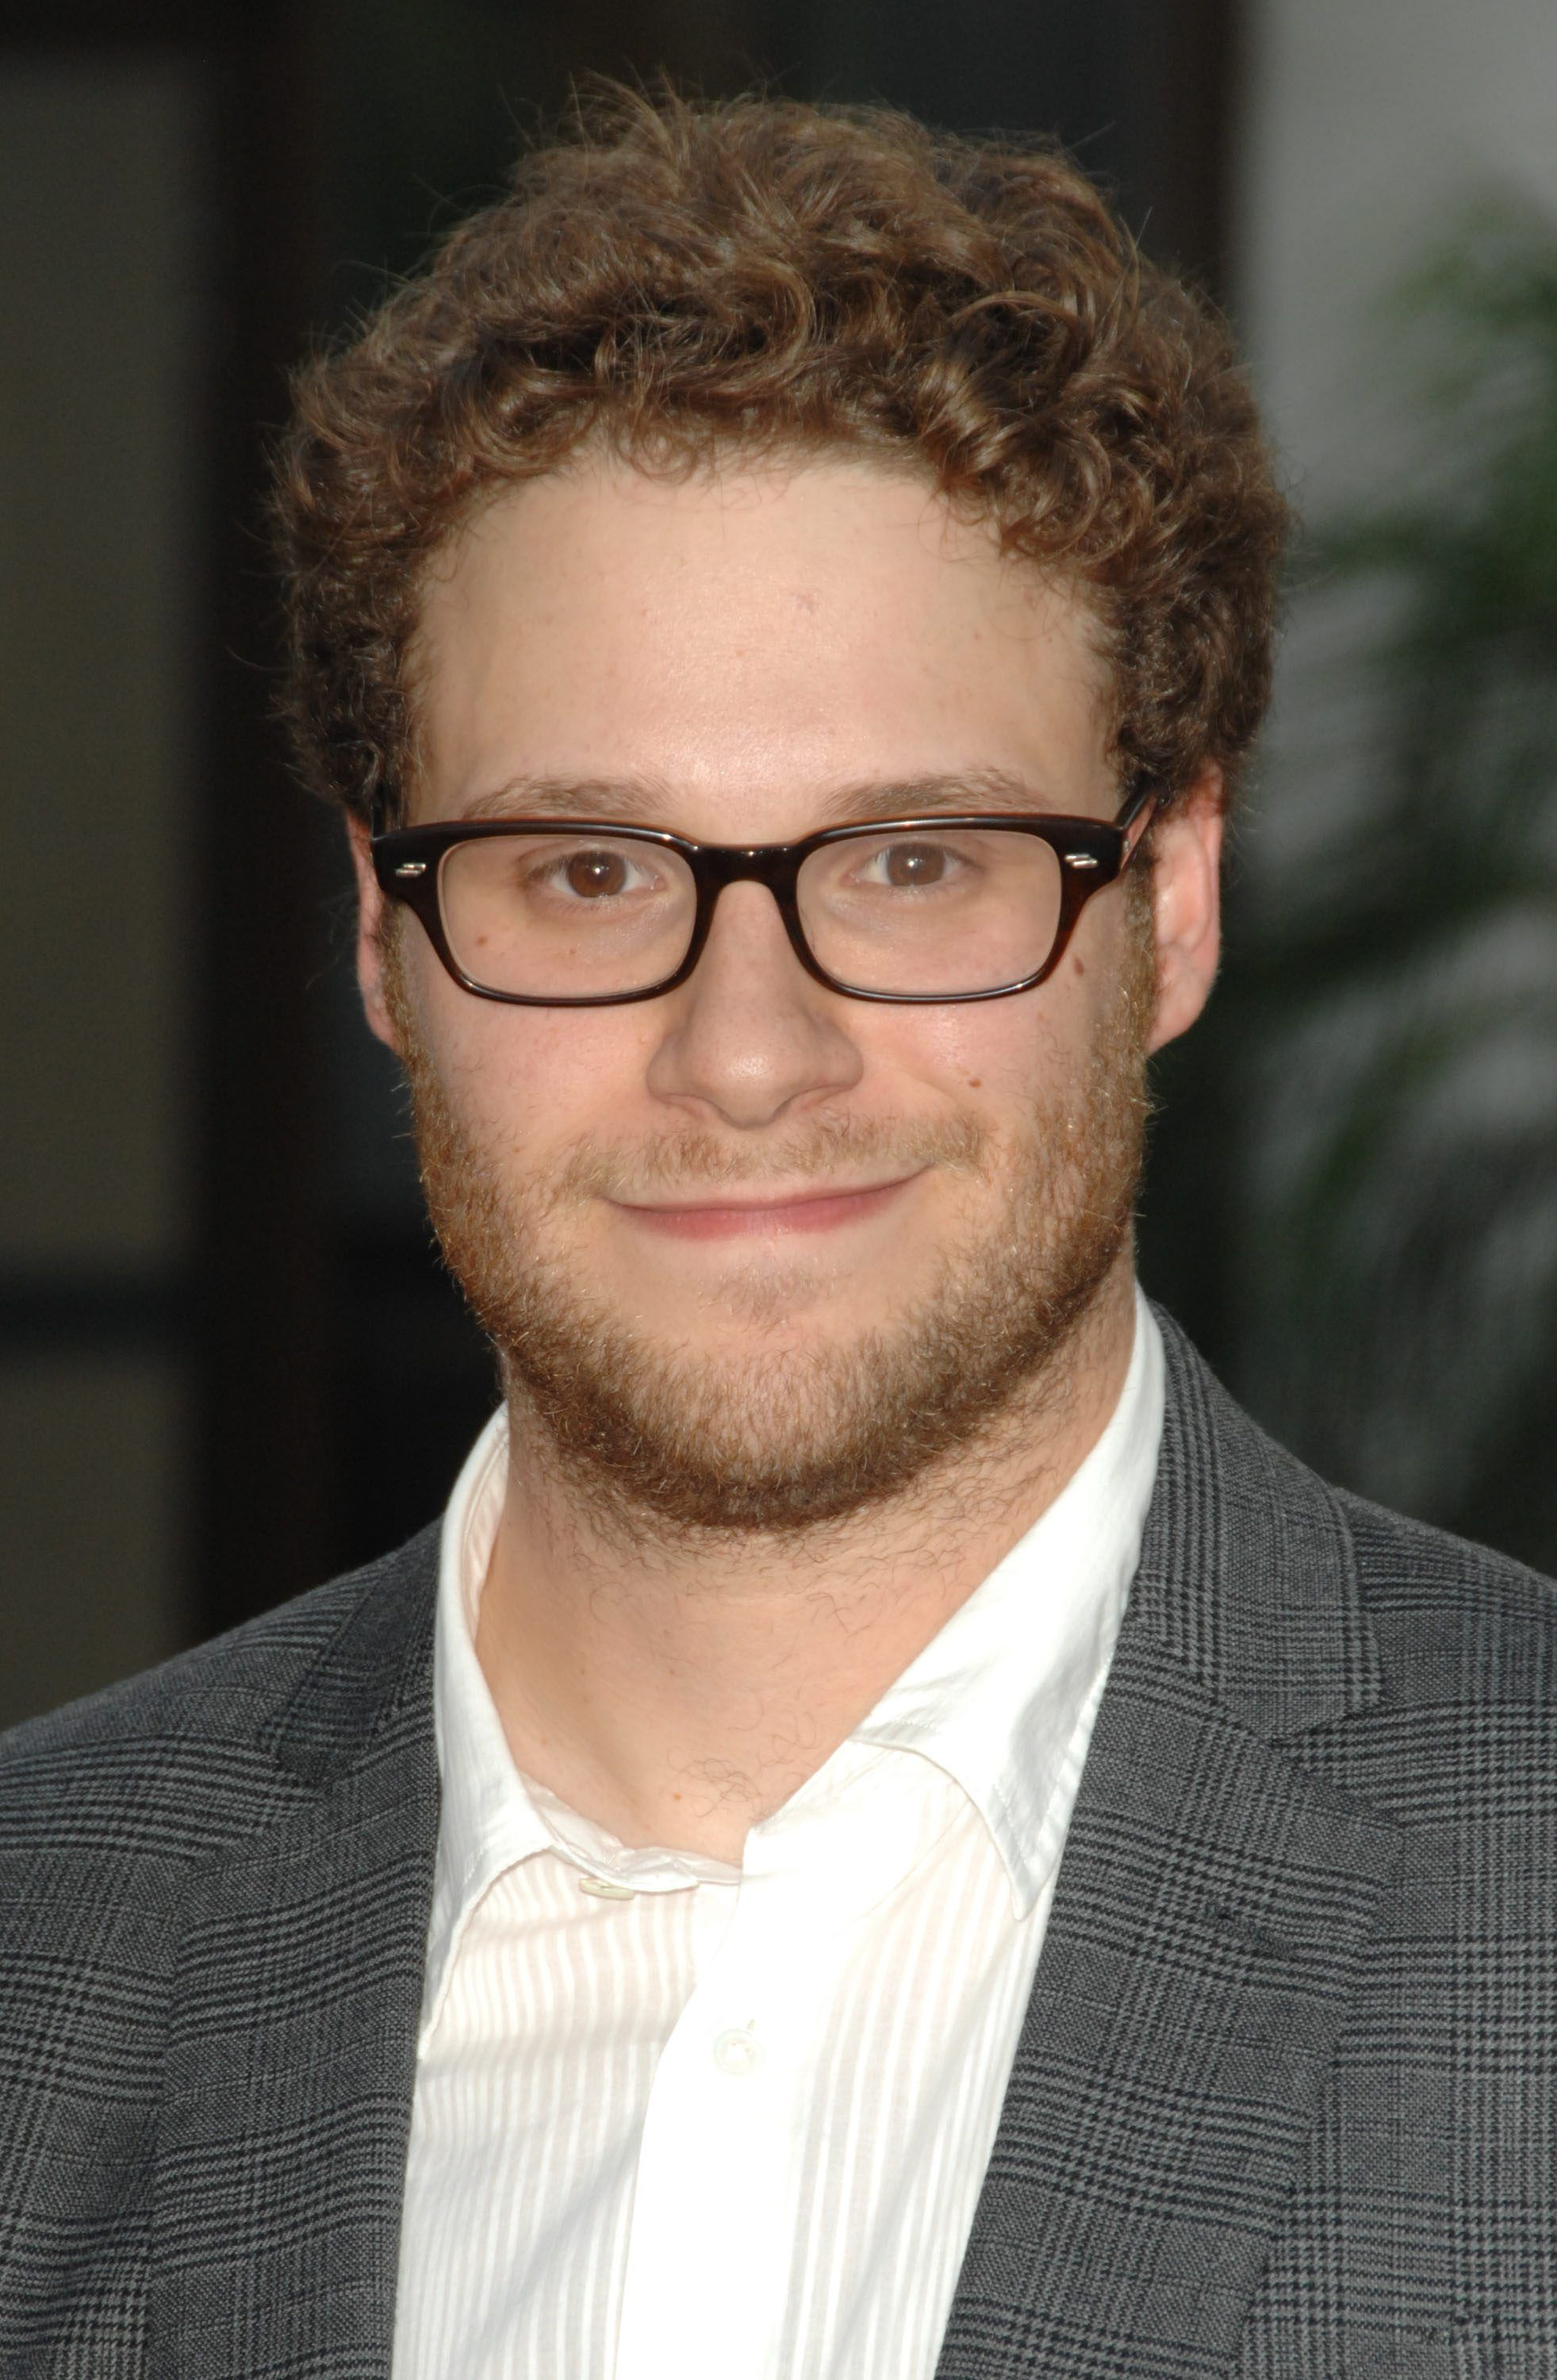 seth rogen simpsonsseth rogen james franco, seth rogen movies, seth rogen wife, seth rogen фильмы, seth rogen & chloë grace moretz, seth rogen net worth, seth rogen imdb, seth rogen films, seth rogen memes, seth rogen simpsons, seth rogen james franco bound, seth rogen cartoon, seth rogen bound, seth rogen best movies, seth rogen oscar, seth rogen kinopoisk, seth rogen sinemalar, seth rogen jimmy fallon, seth rogen wiki, seth rogen interview